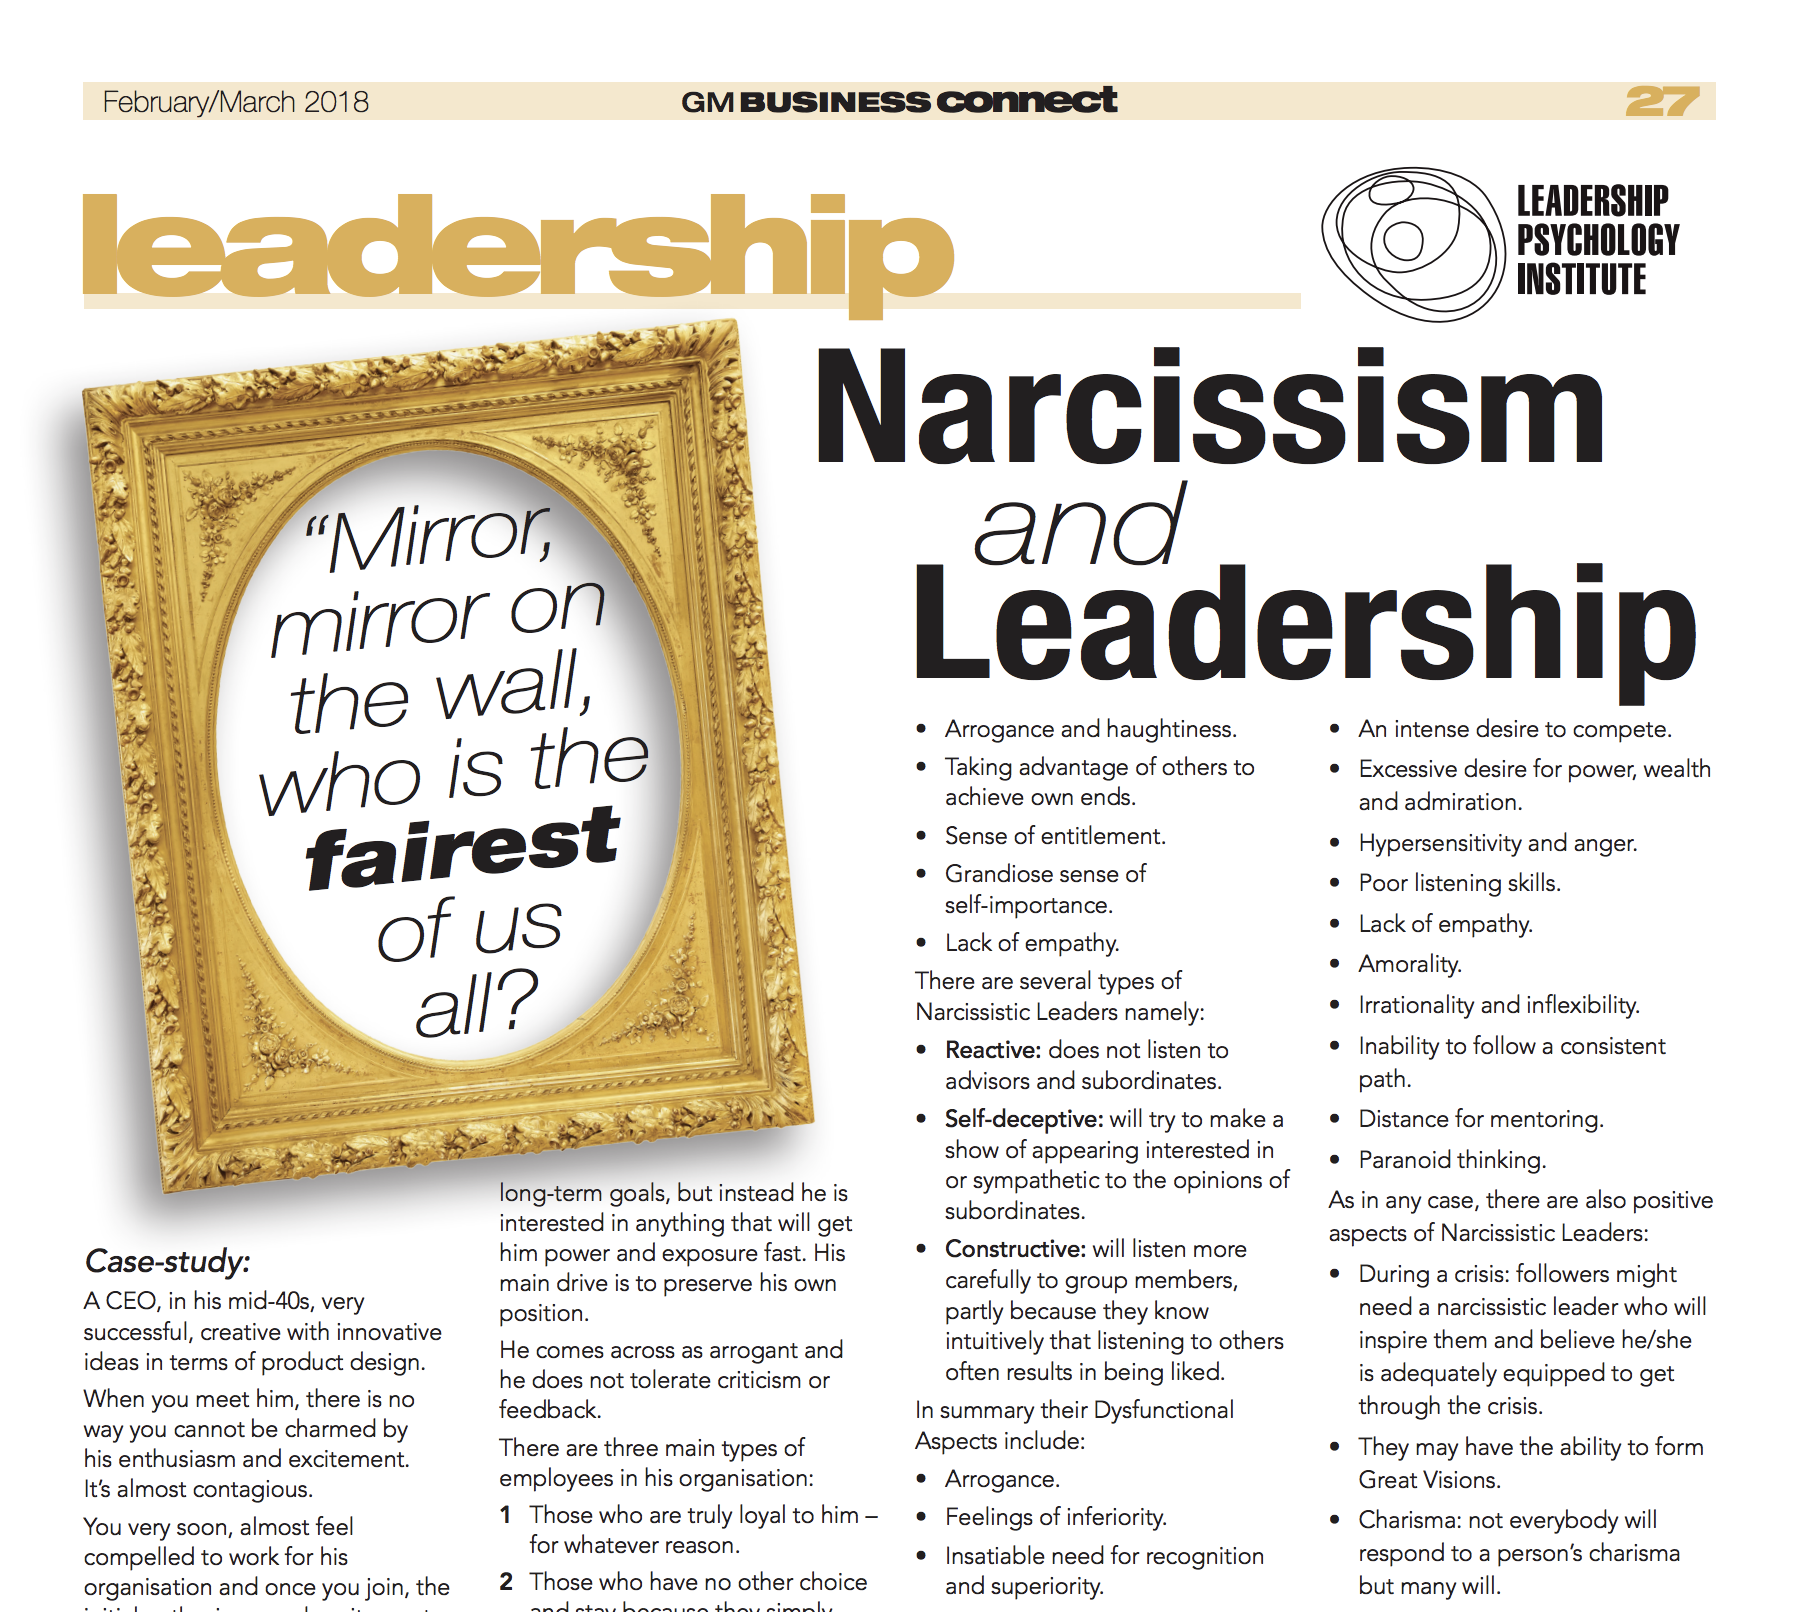 leadership psychology institute | Narcissism and Leadership